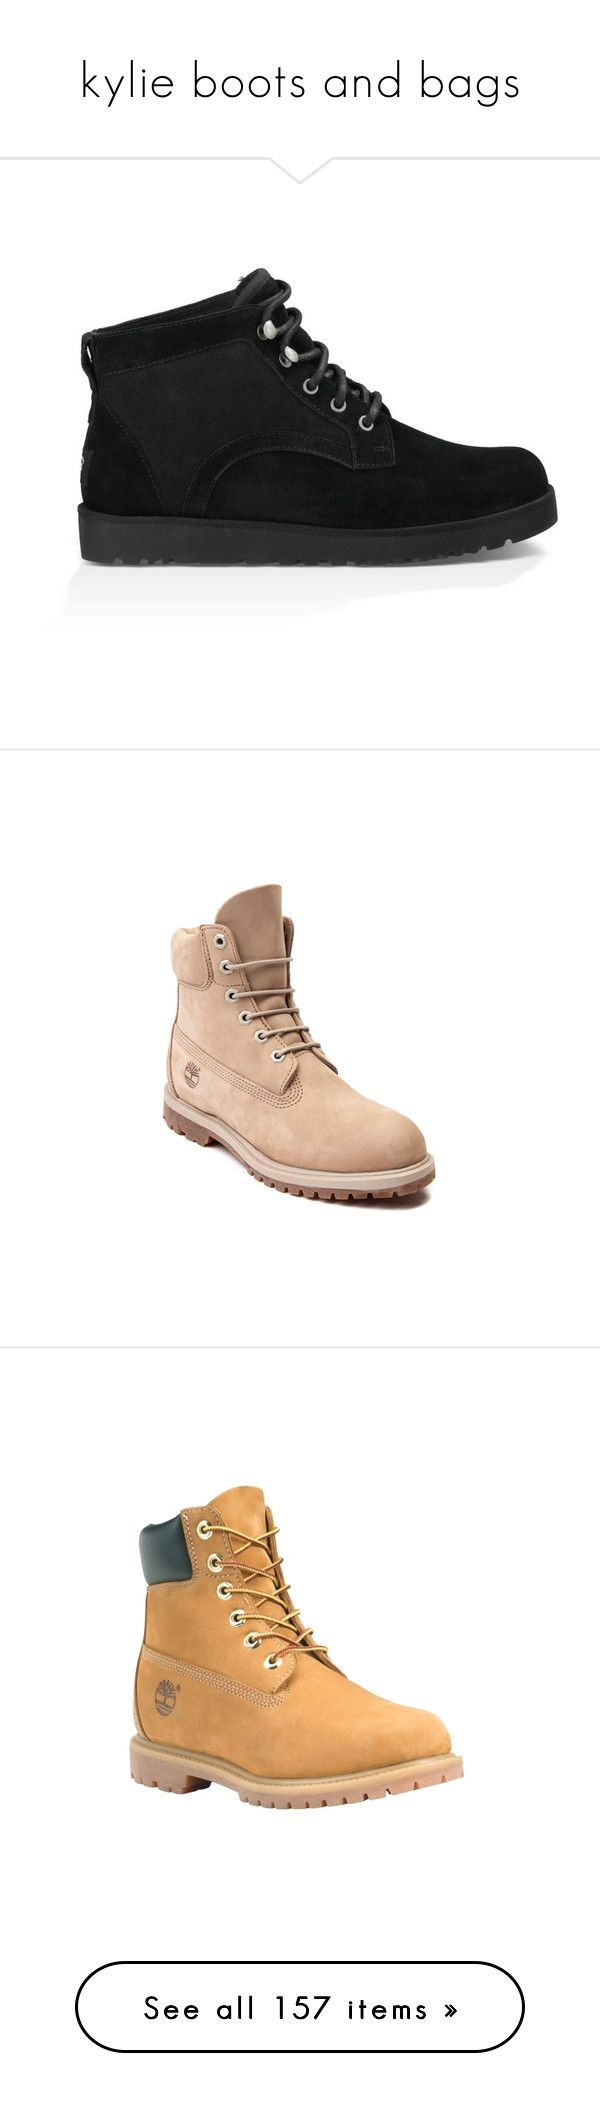 """""""kylie boots and bags"""" by marilia13 ❤ liked on Polyvore featuring shoes, boots, slim shoes, traction shoes, ugg australia, slim boots, light weight boots, timberland footwear, timberland boots and timberland shoes"""